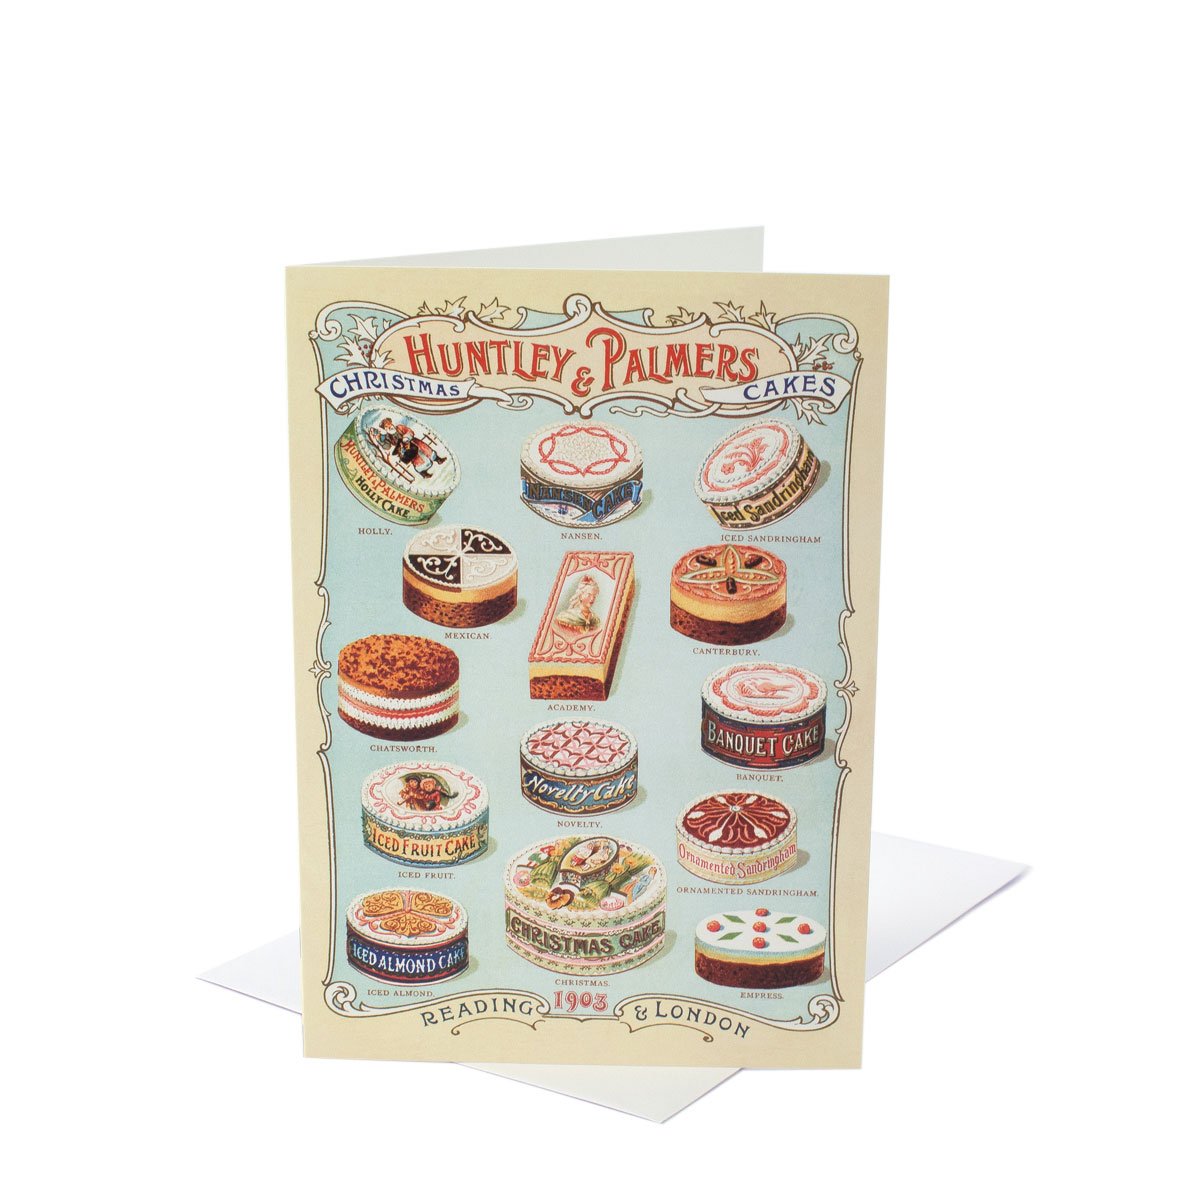 V&A Christmas Cards – Christmas Cakes (Pack of 10)